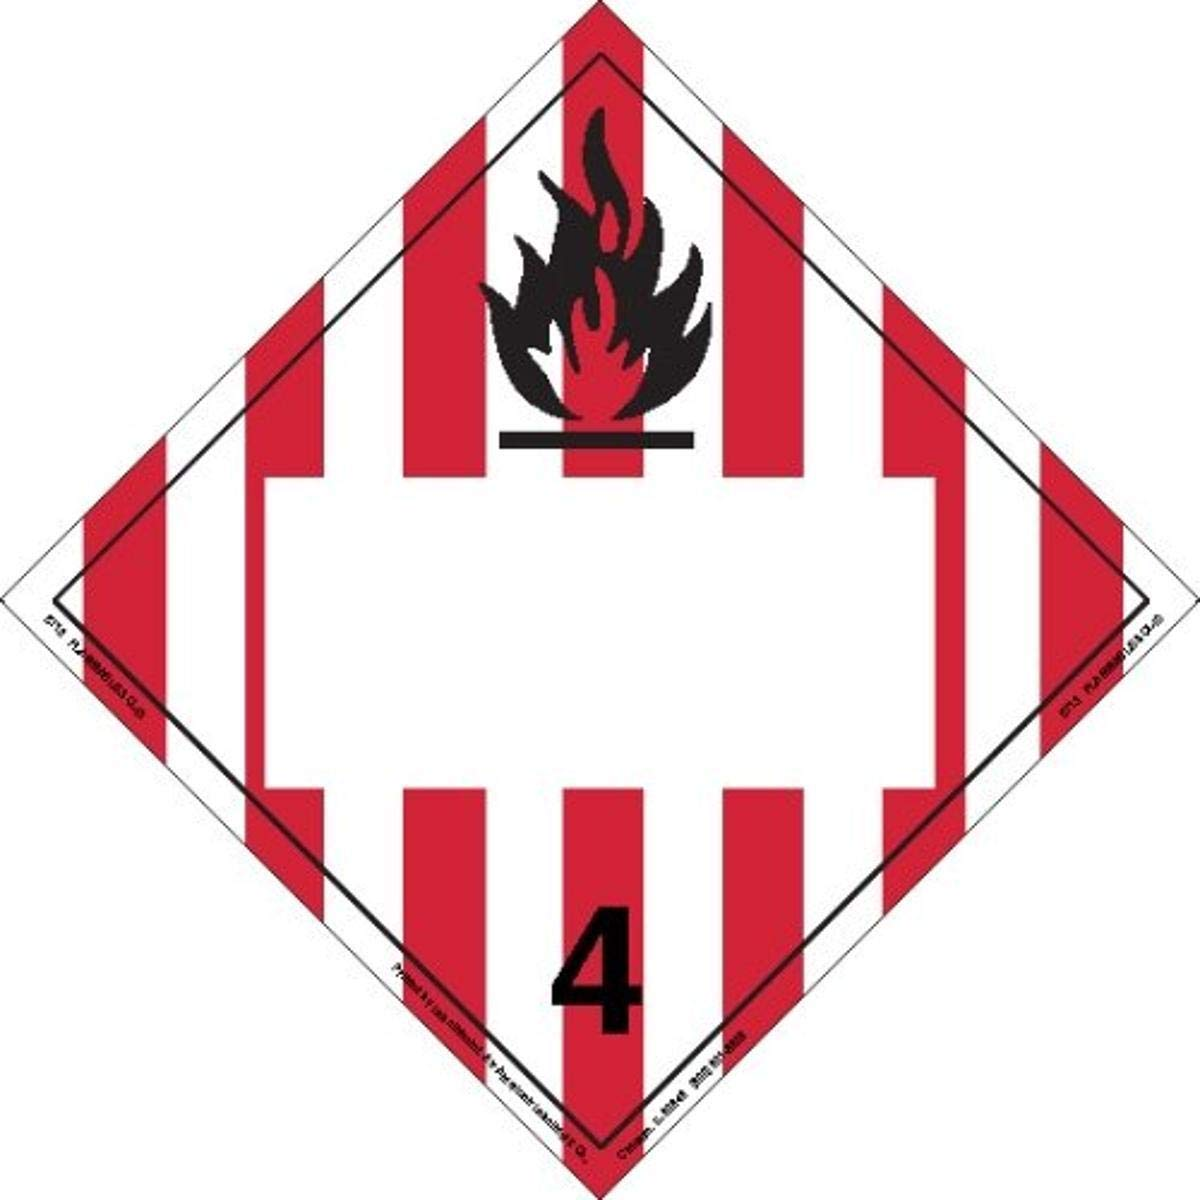 Labelmaster ZT13 Flammable Solid Placard Tagboard OFFer Blank Hazmat Industry No. 1